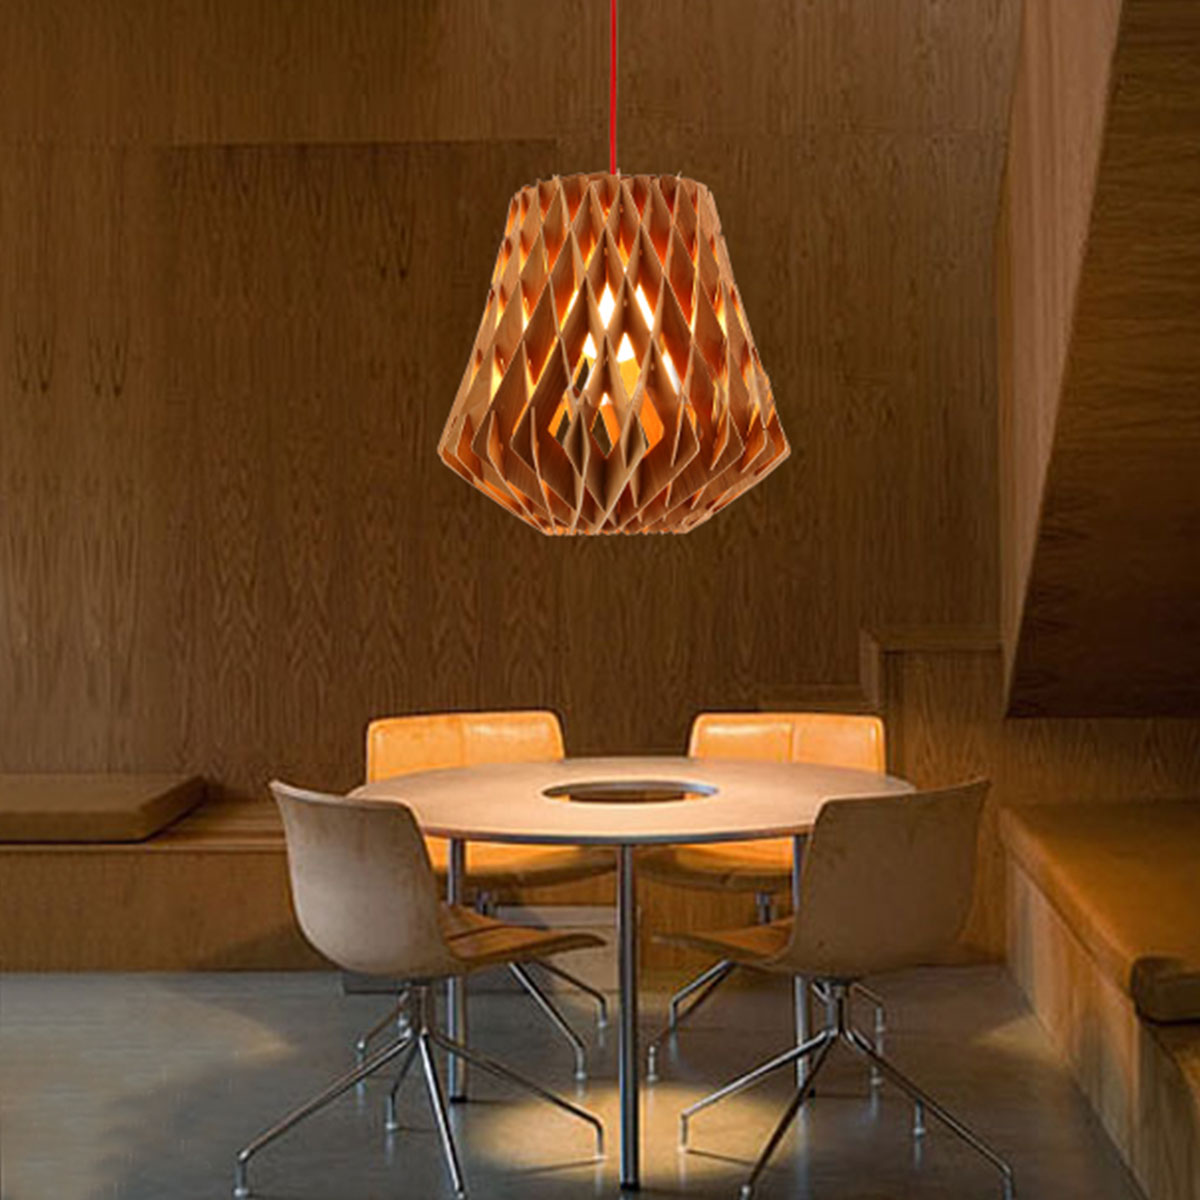 Type pendant lamp style northern european color wood material wood shade material wood fixture height 38cm15inch fixture diameter 38cm15inch